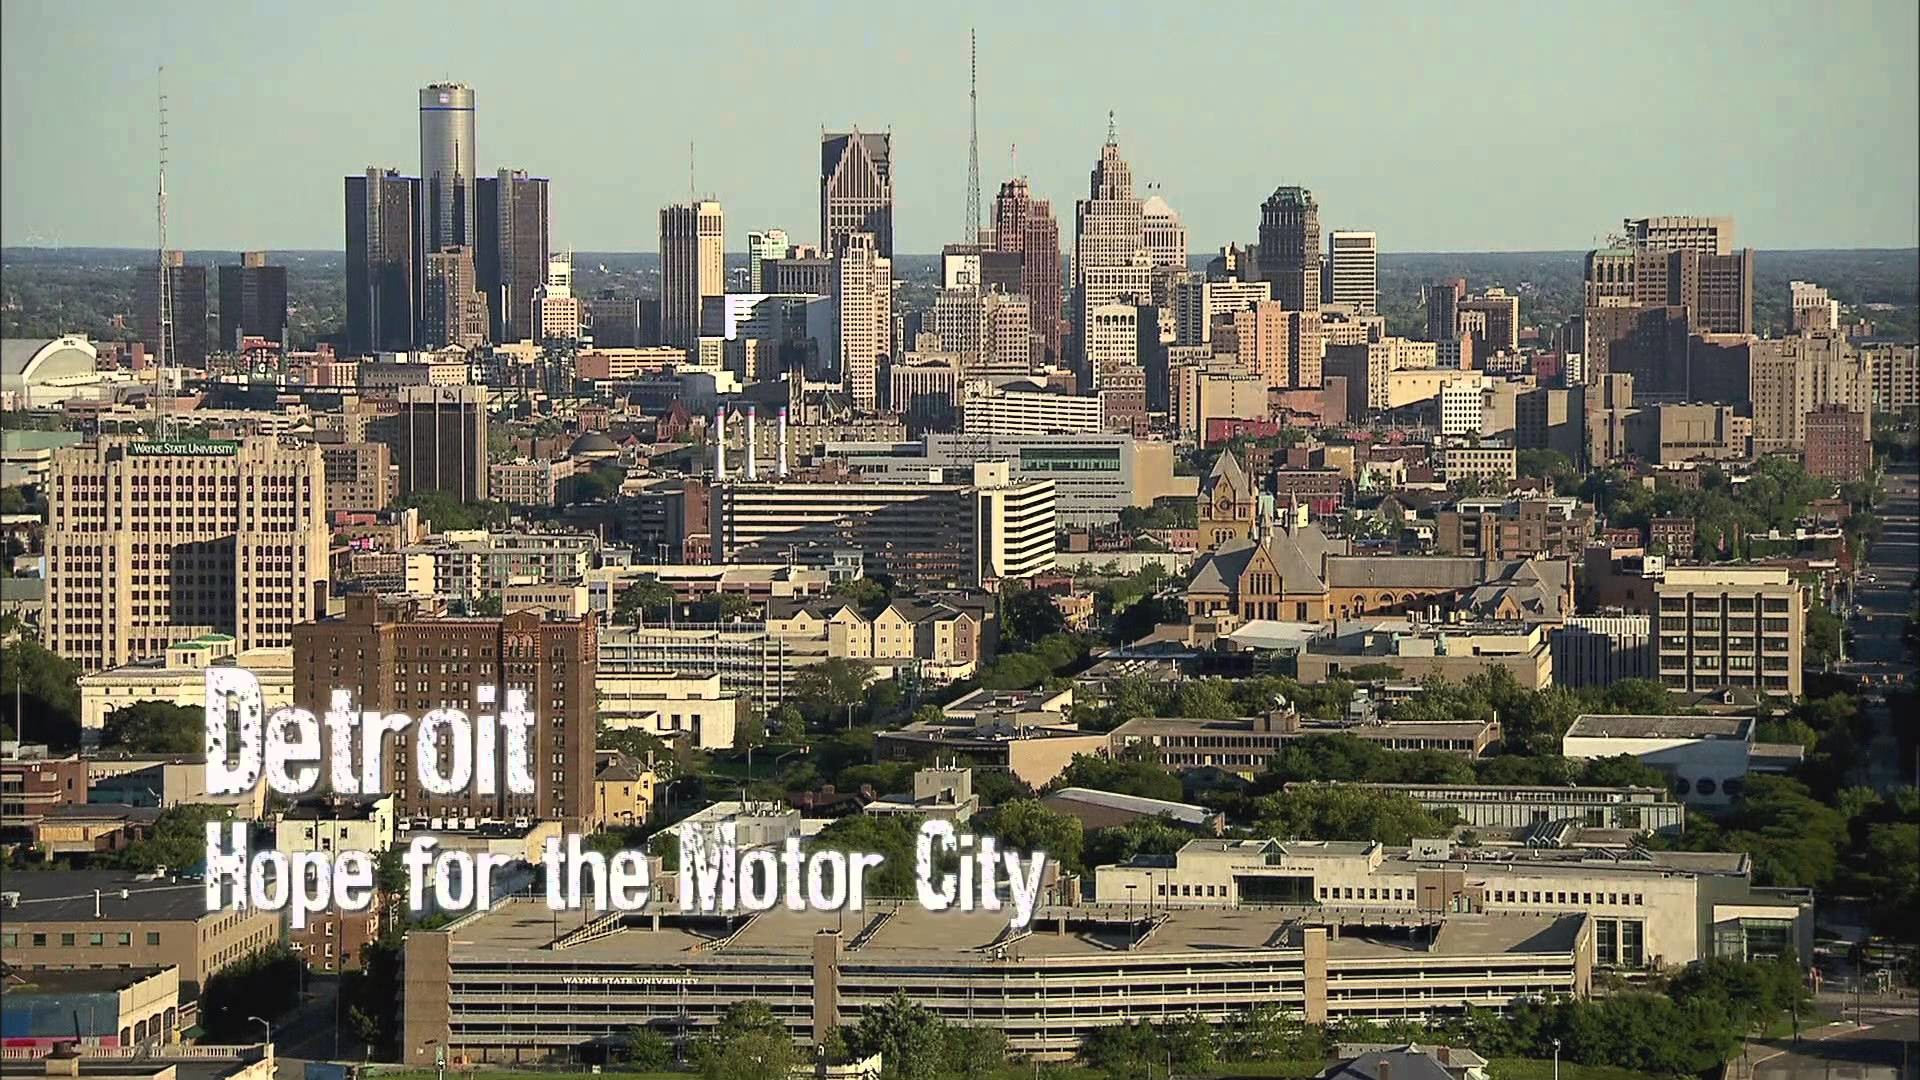 Res: 1920x1080, Modern ruins: Detroit – Hope for a motor city